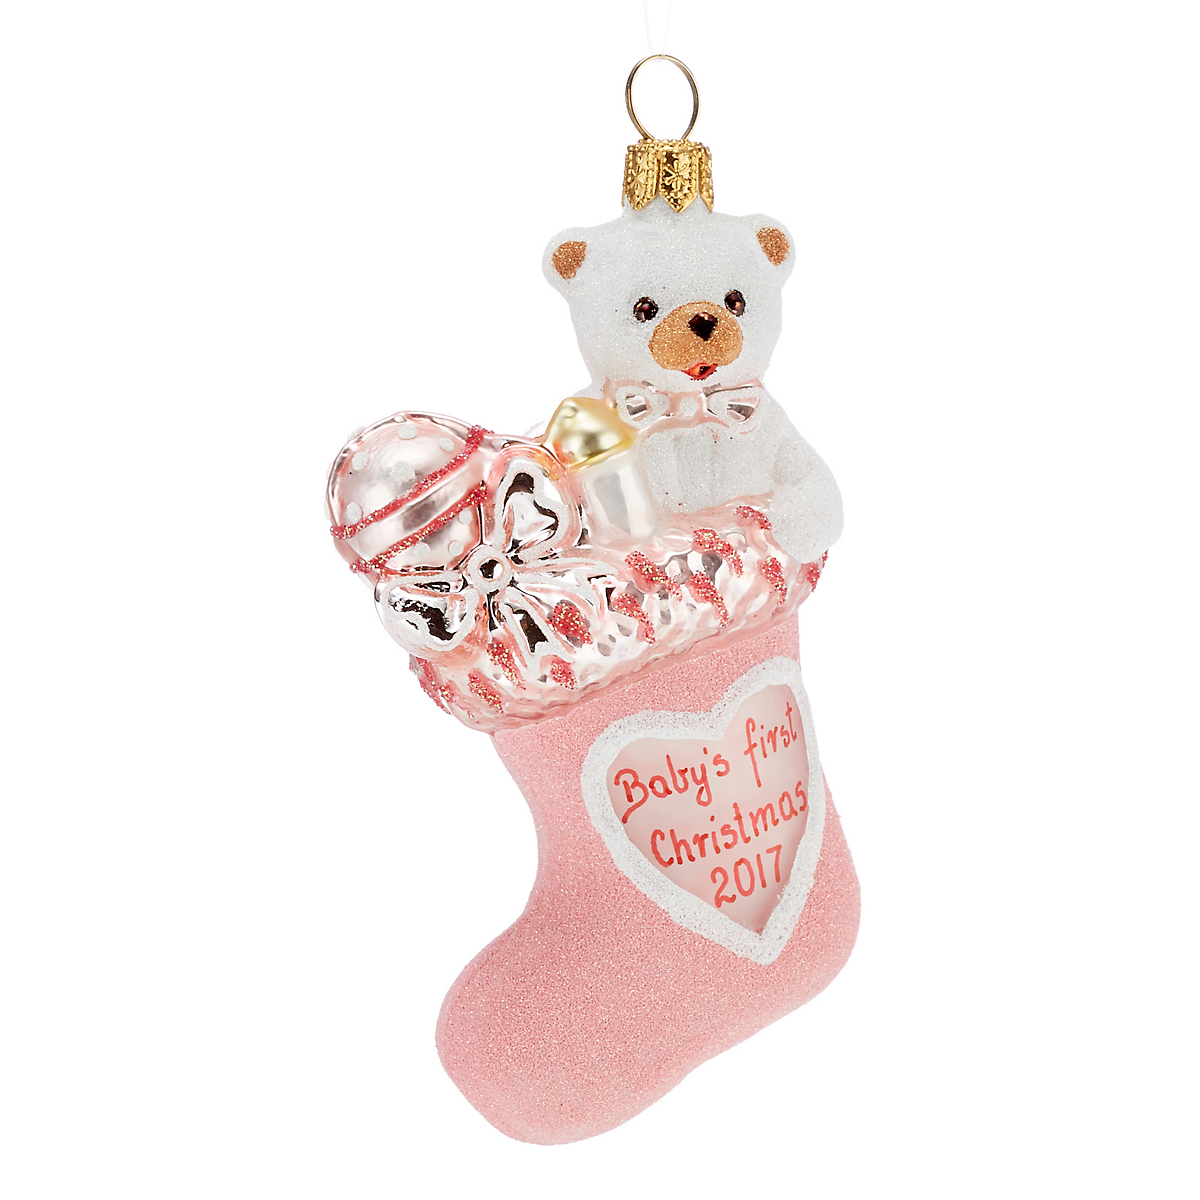 Baby's 1st Christmas Stocking Christmas Ornament, Pink